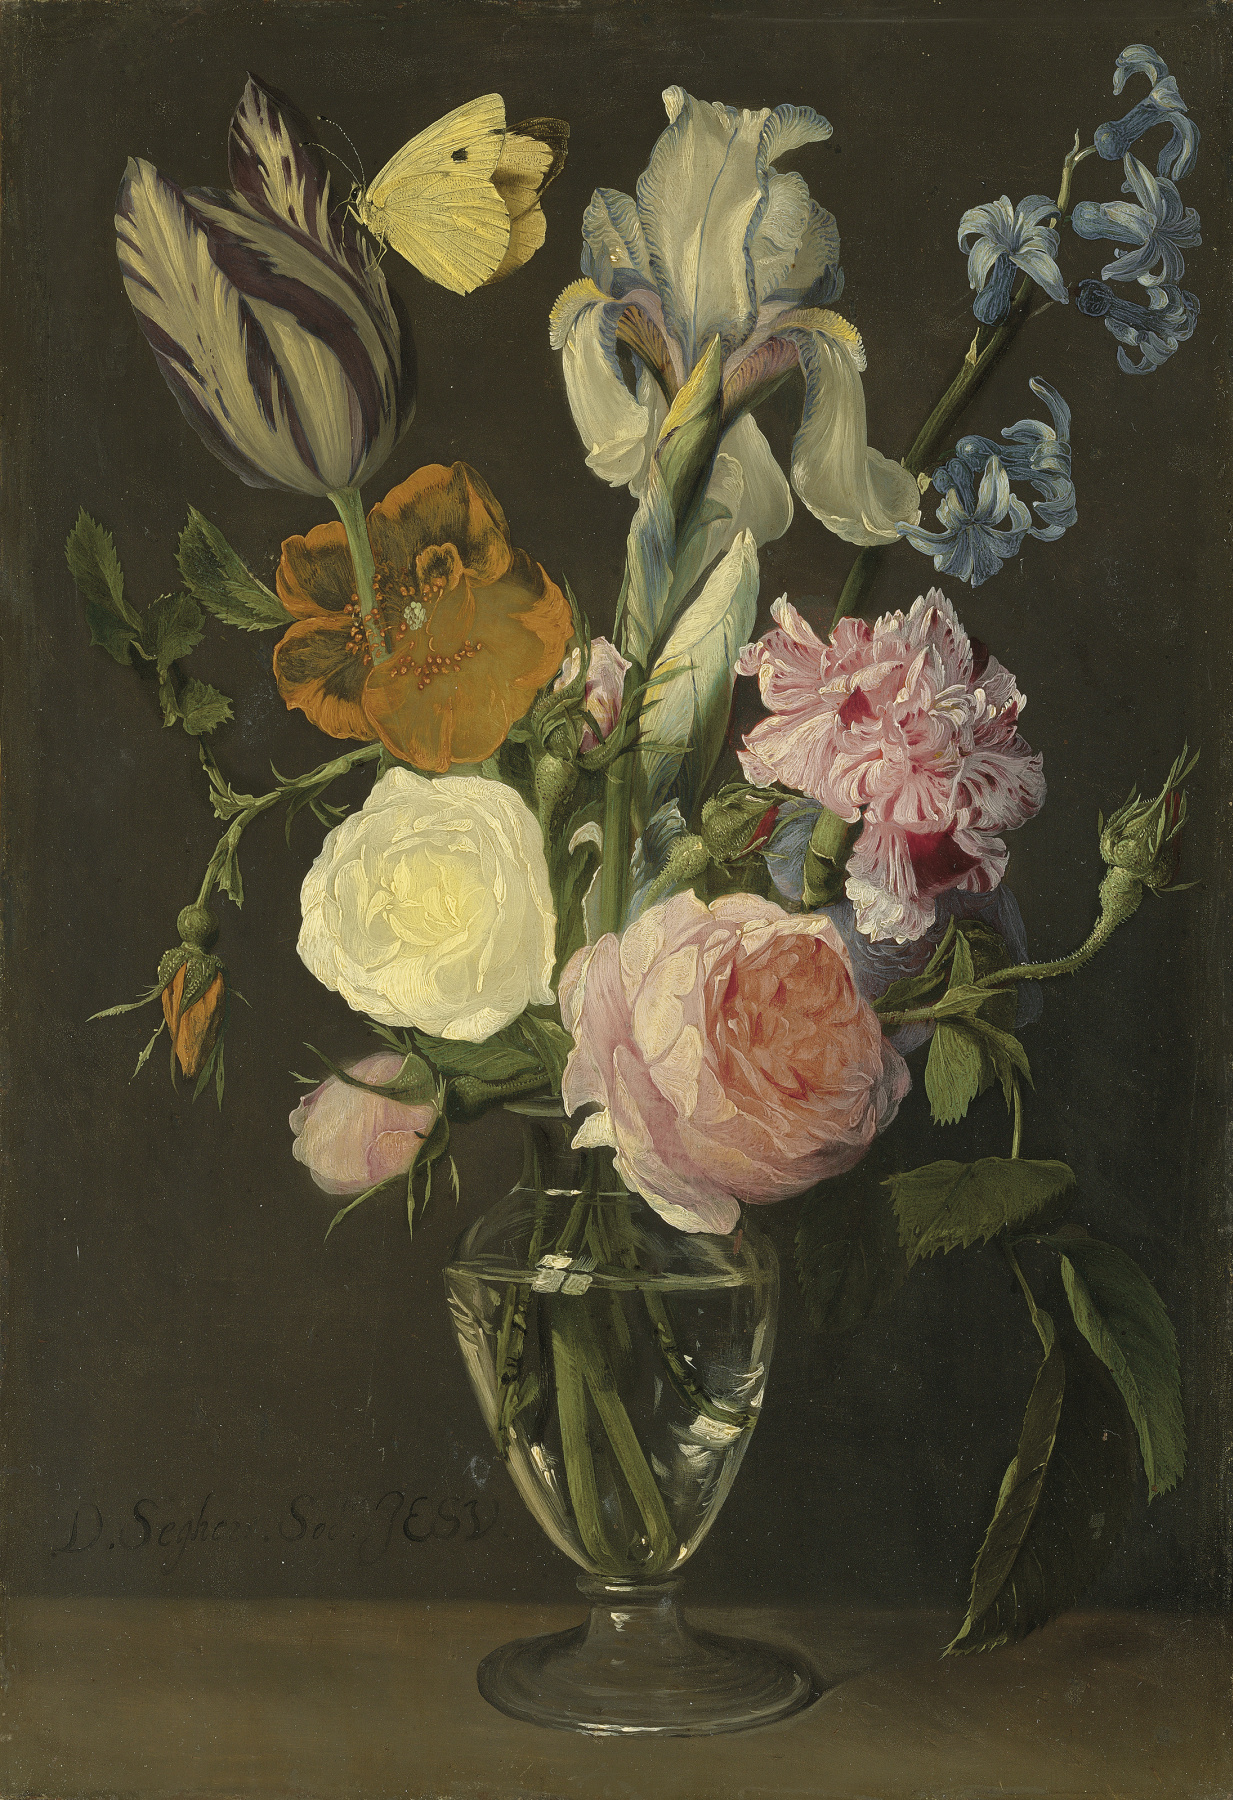 Daniel Segers. Tulips, roses and other flowers in a glass vase